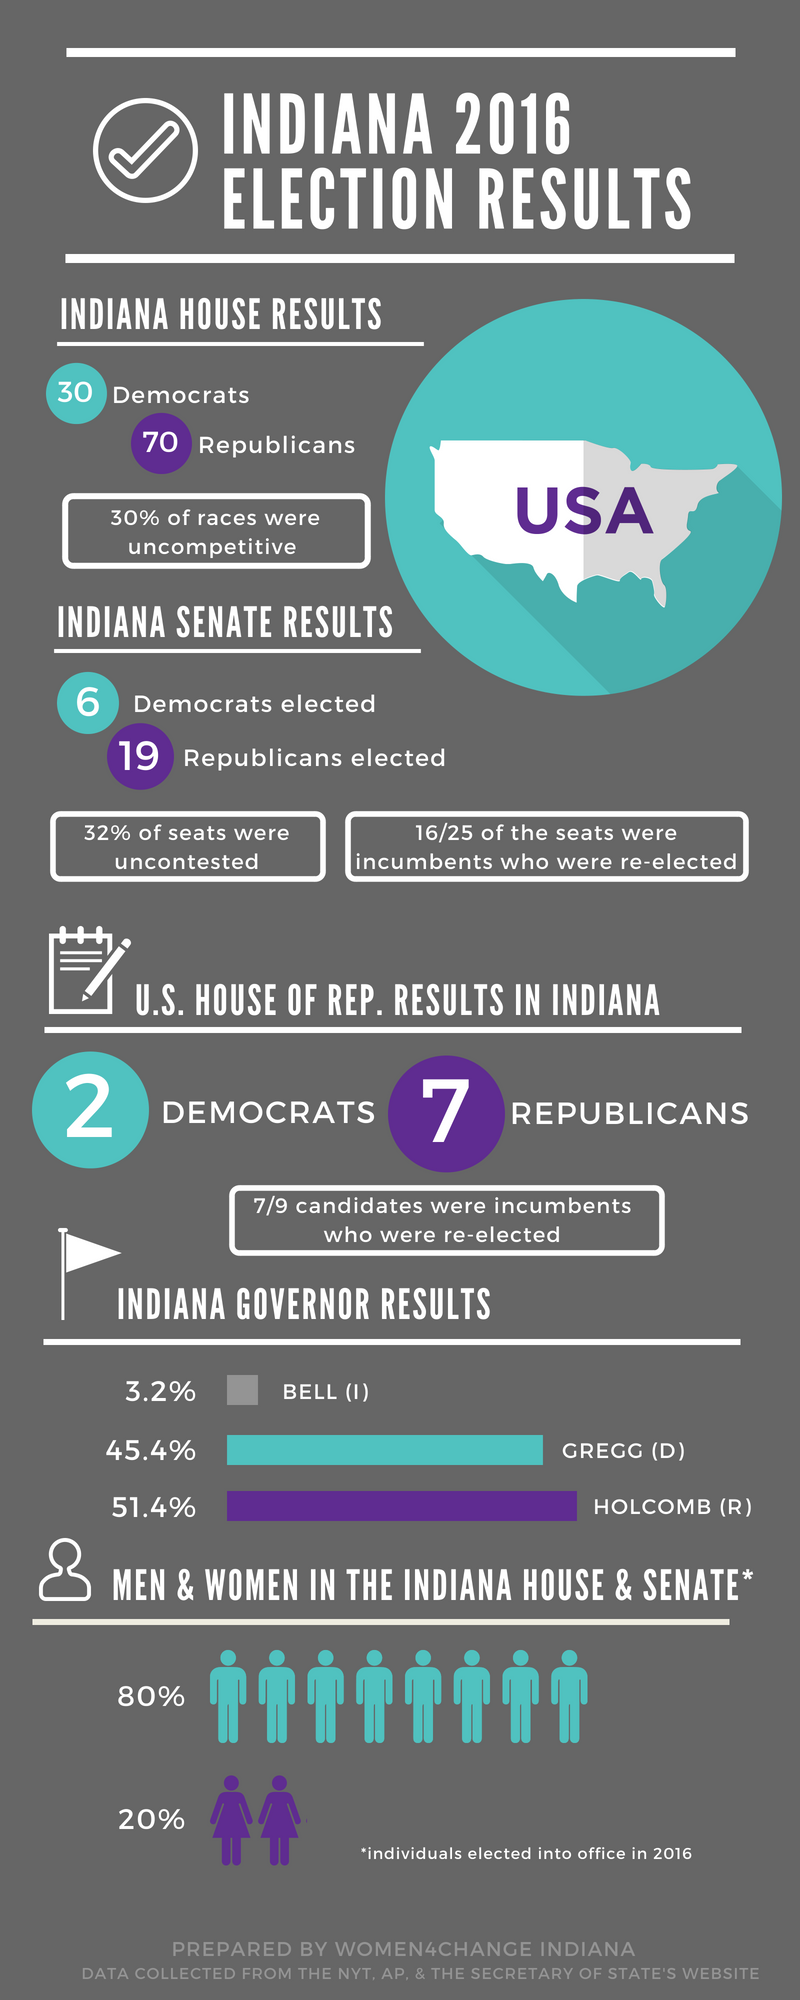 Indiana 2016 Election Results.png